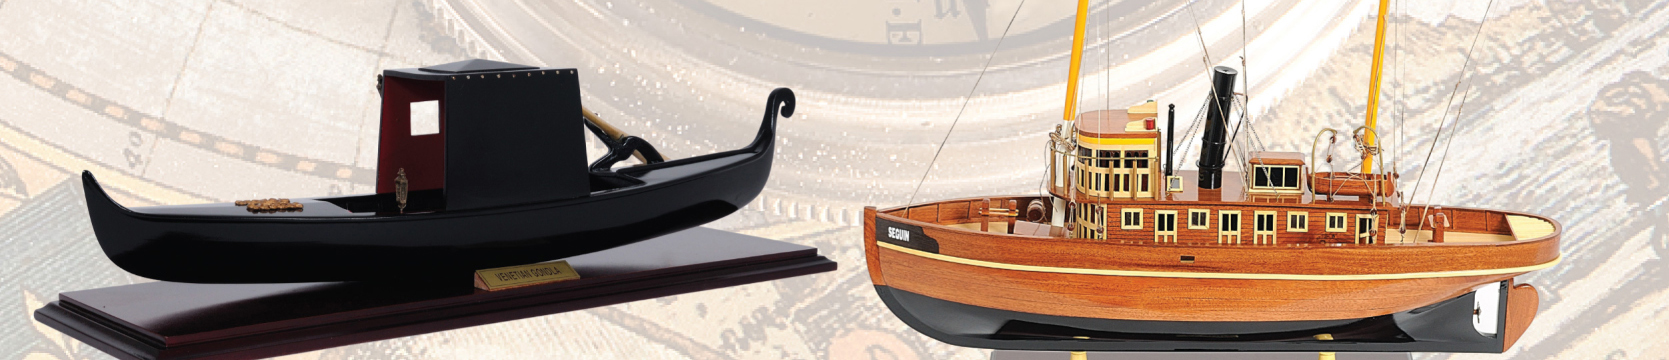 Boats/Canoes Model /></a></li>